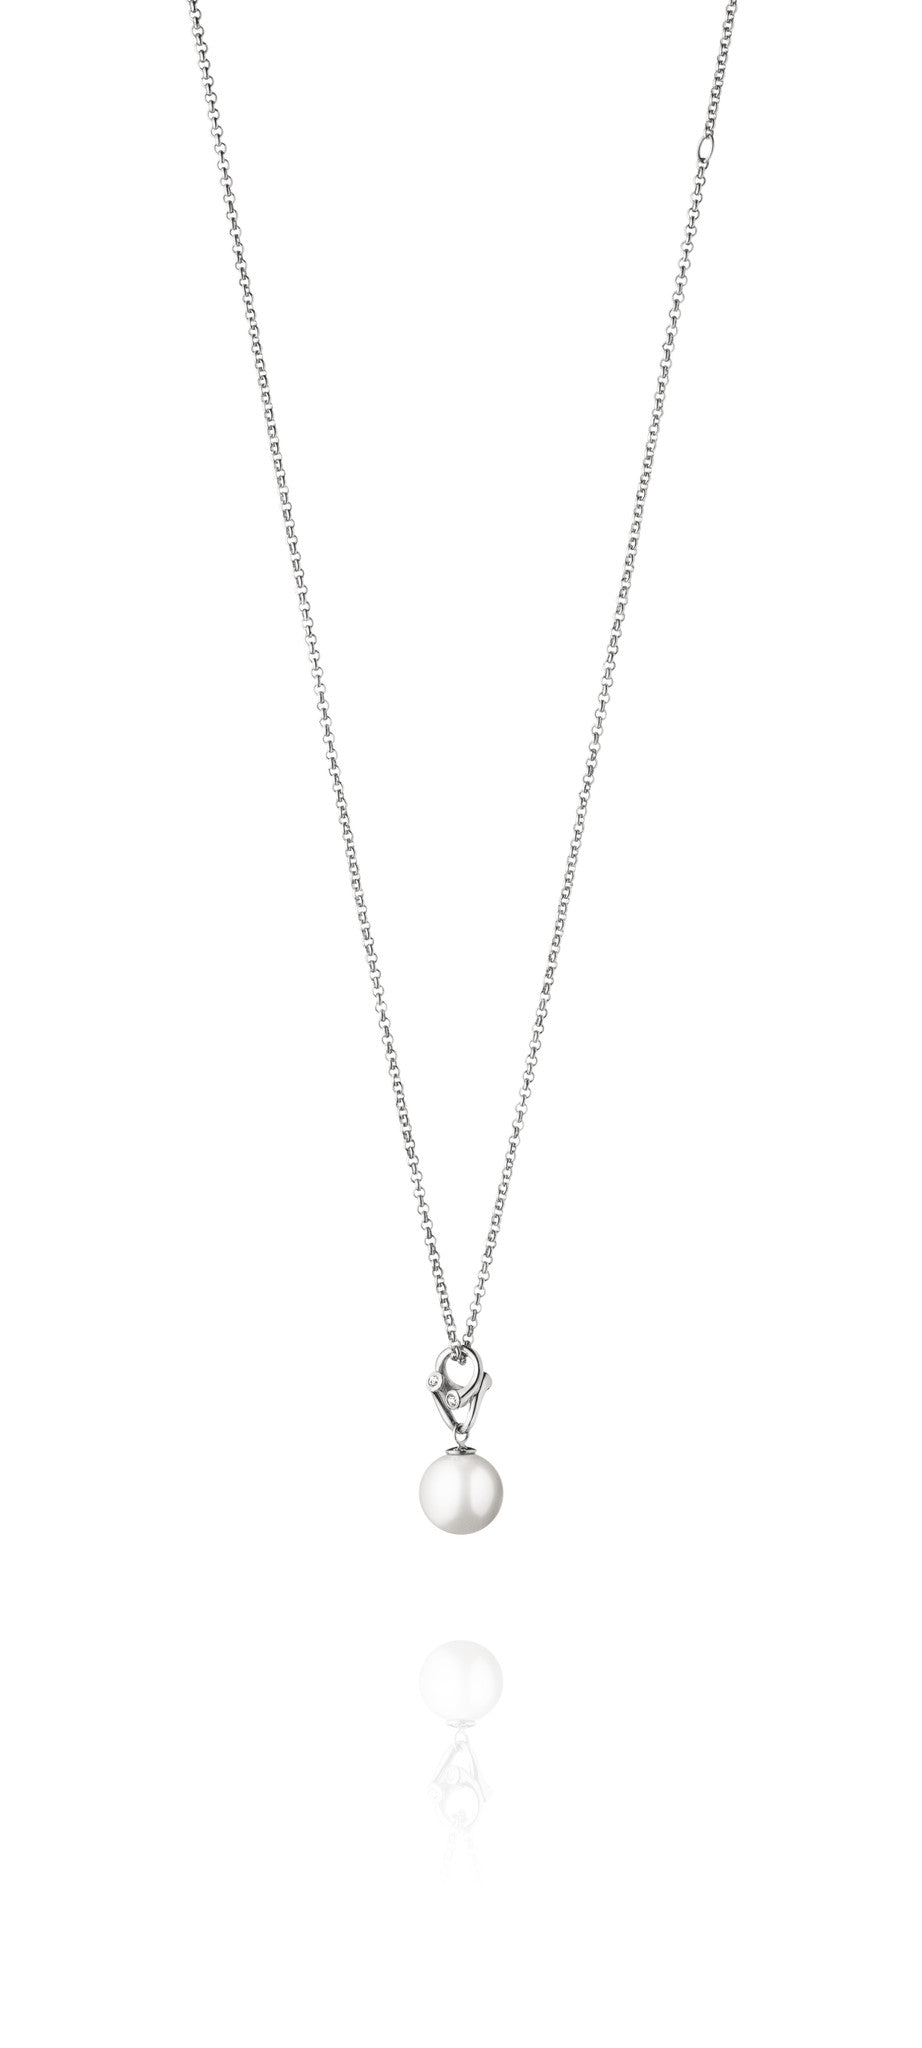 Georg Jensen White Gold Freshwater Pearl Brilliant Cut Diamond Necklace D